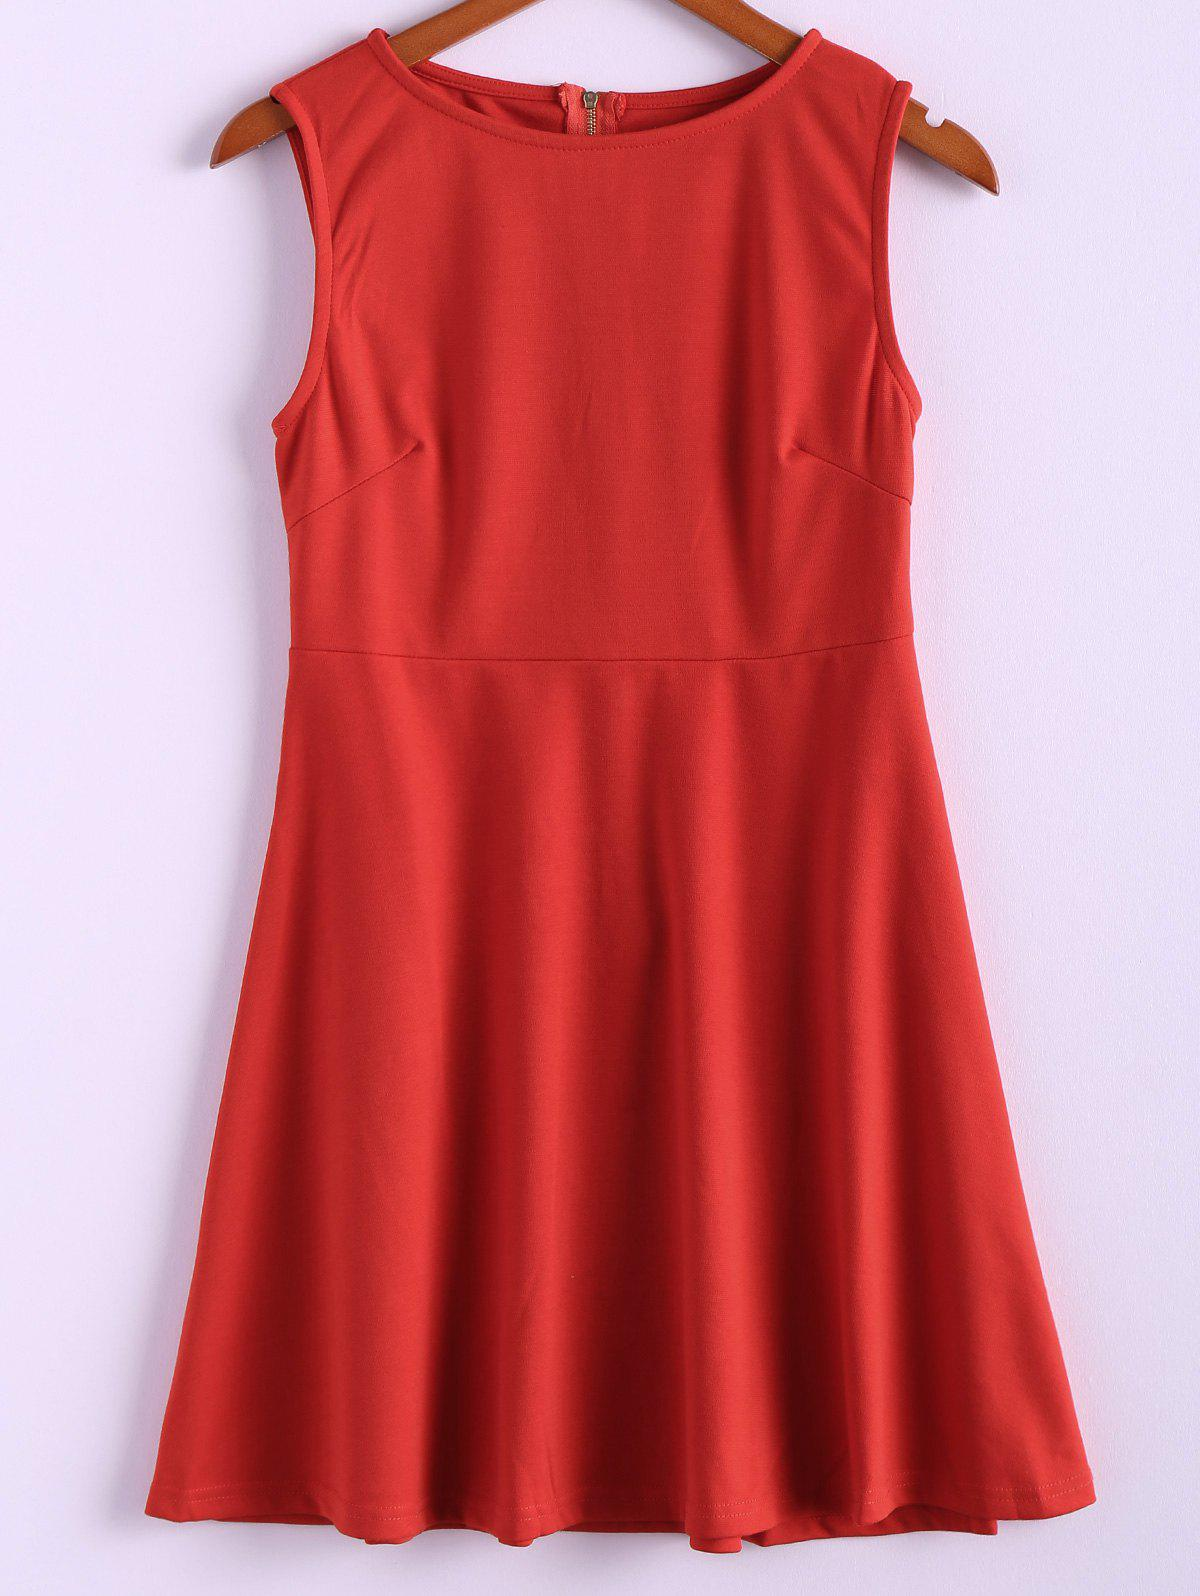 Simple Style Polyester Round Neck Zipper Sleeveless Women's Dress (Without Belt) - RED L